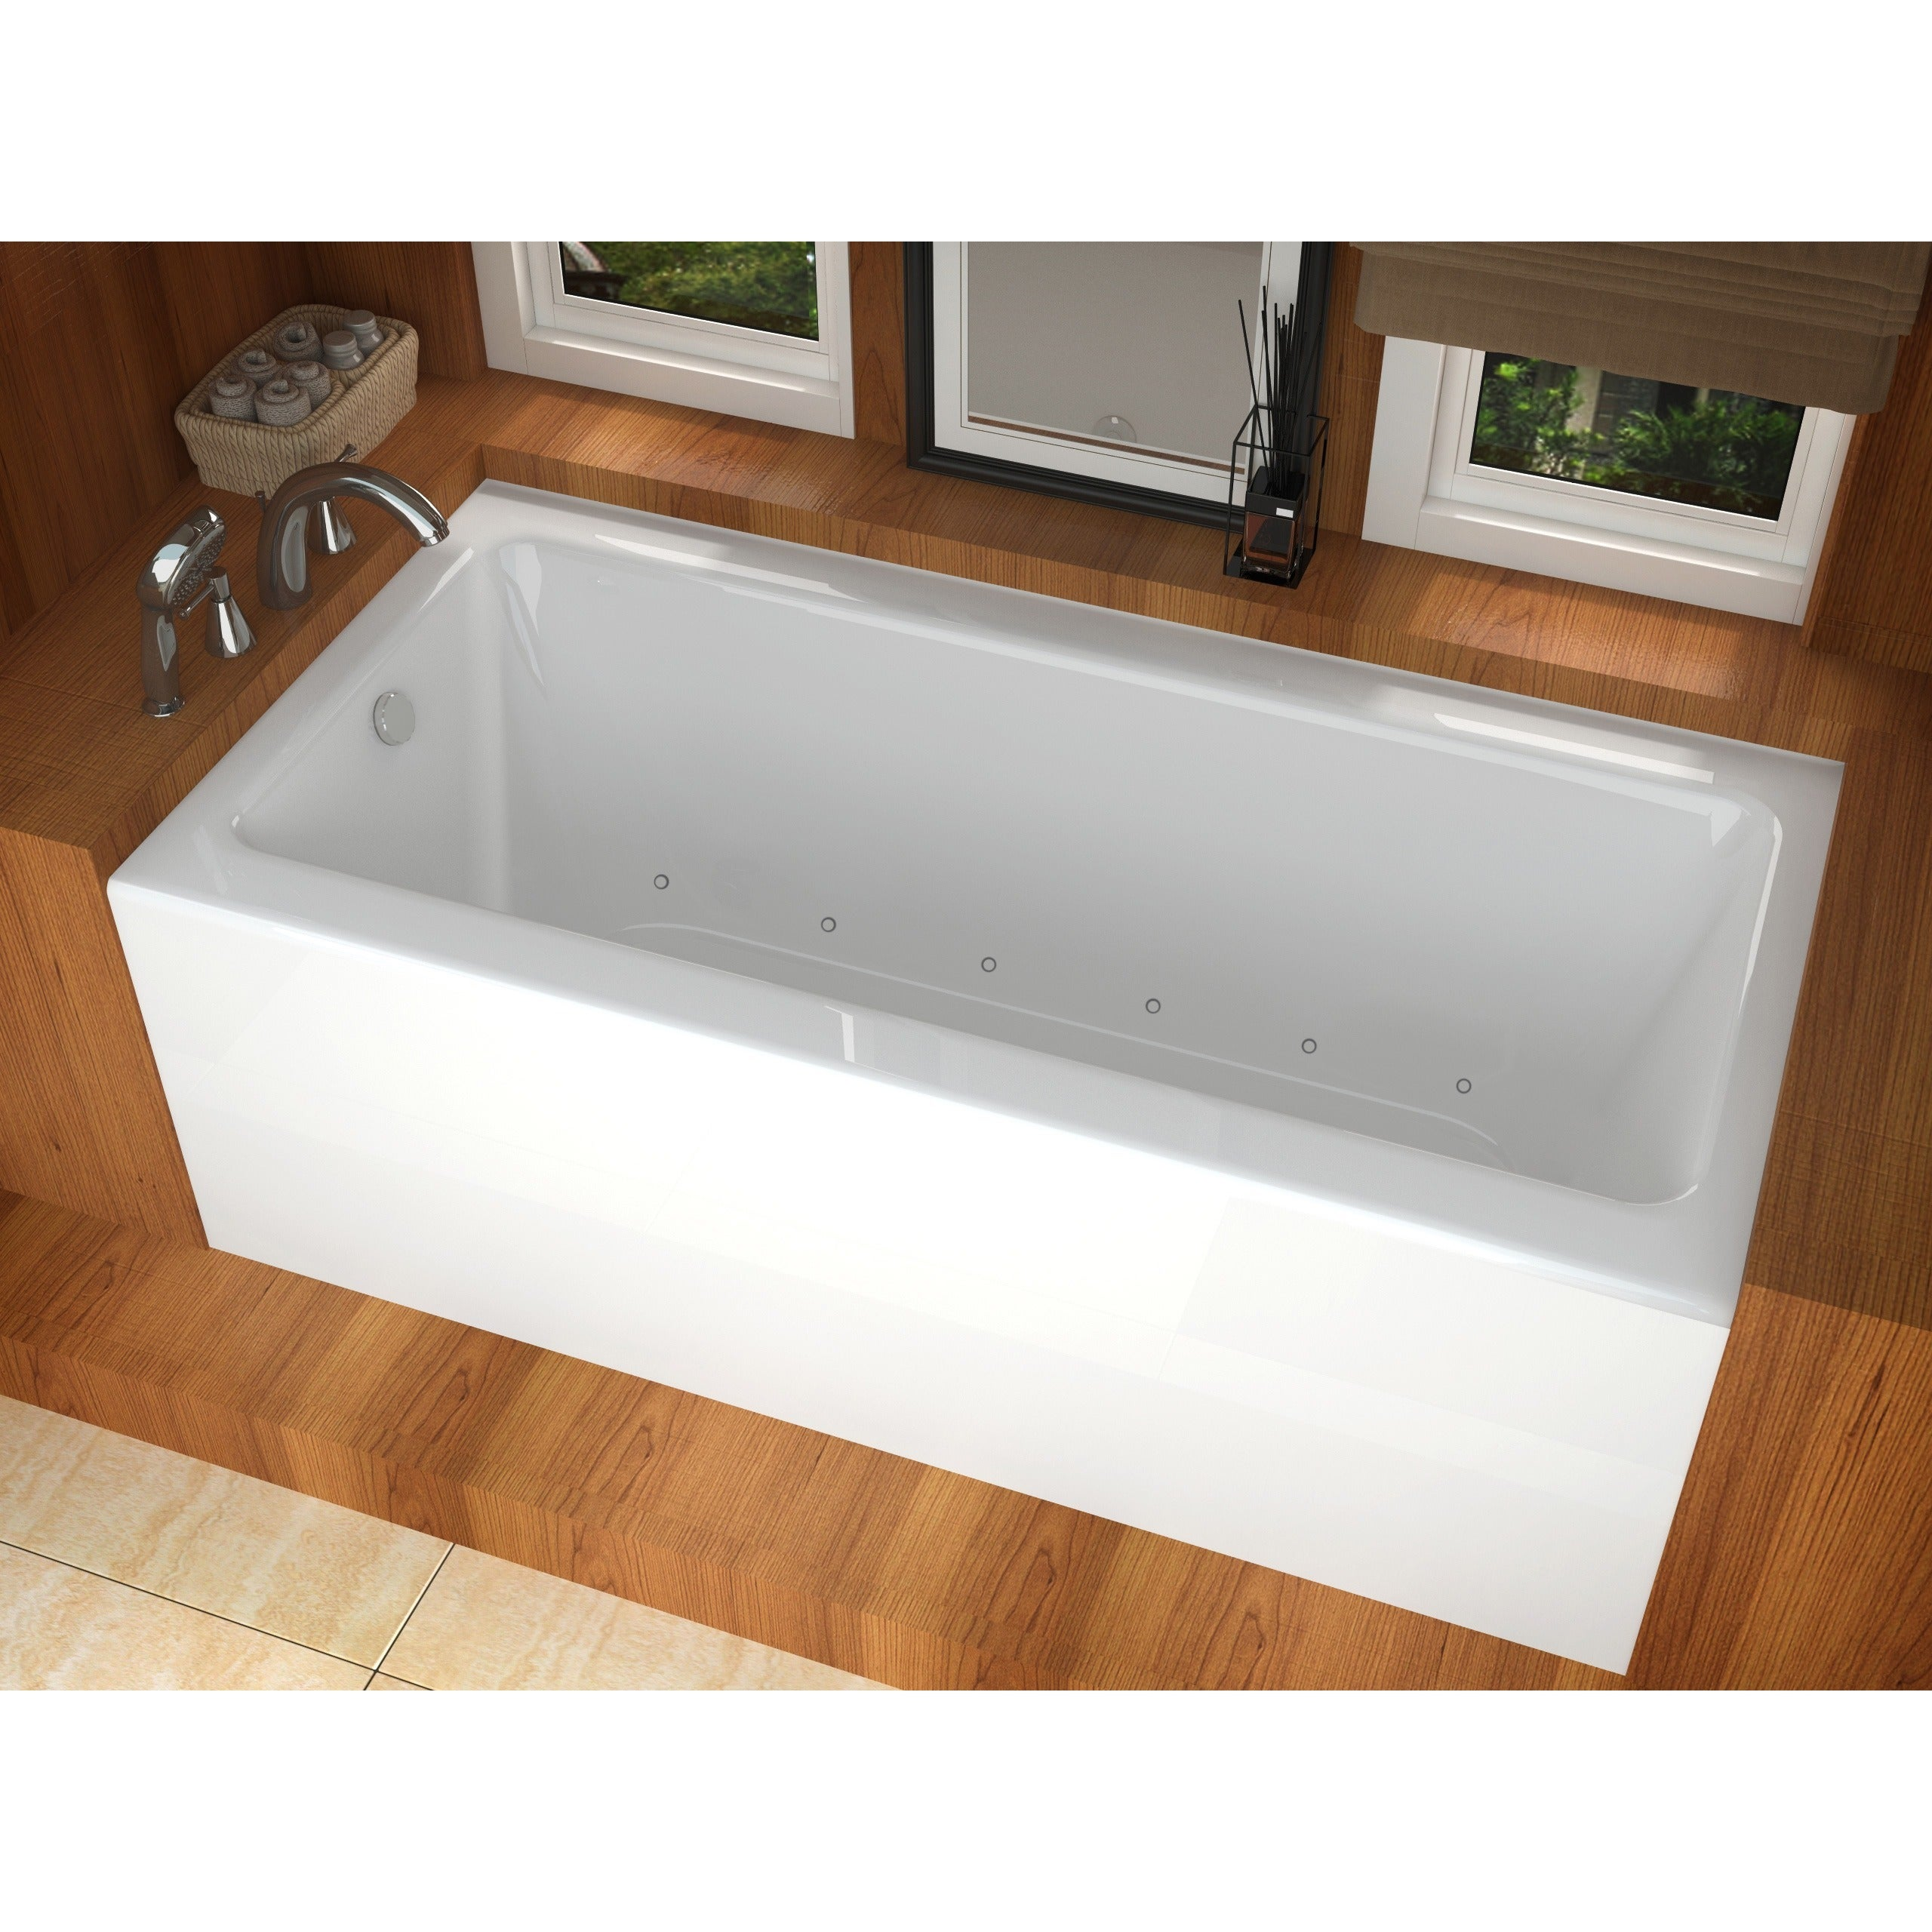 Shop Atlantis Whirlpools Soho 30 x 60 Front Skirted Air Massage Tub ...